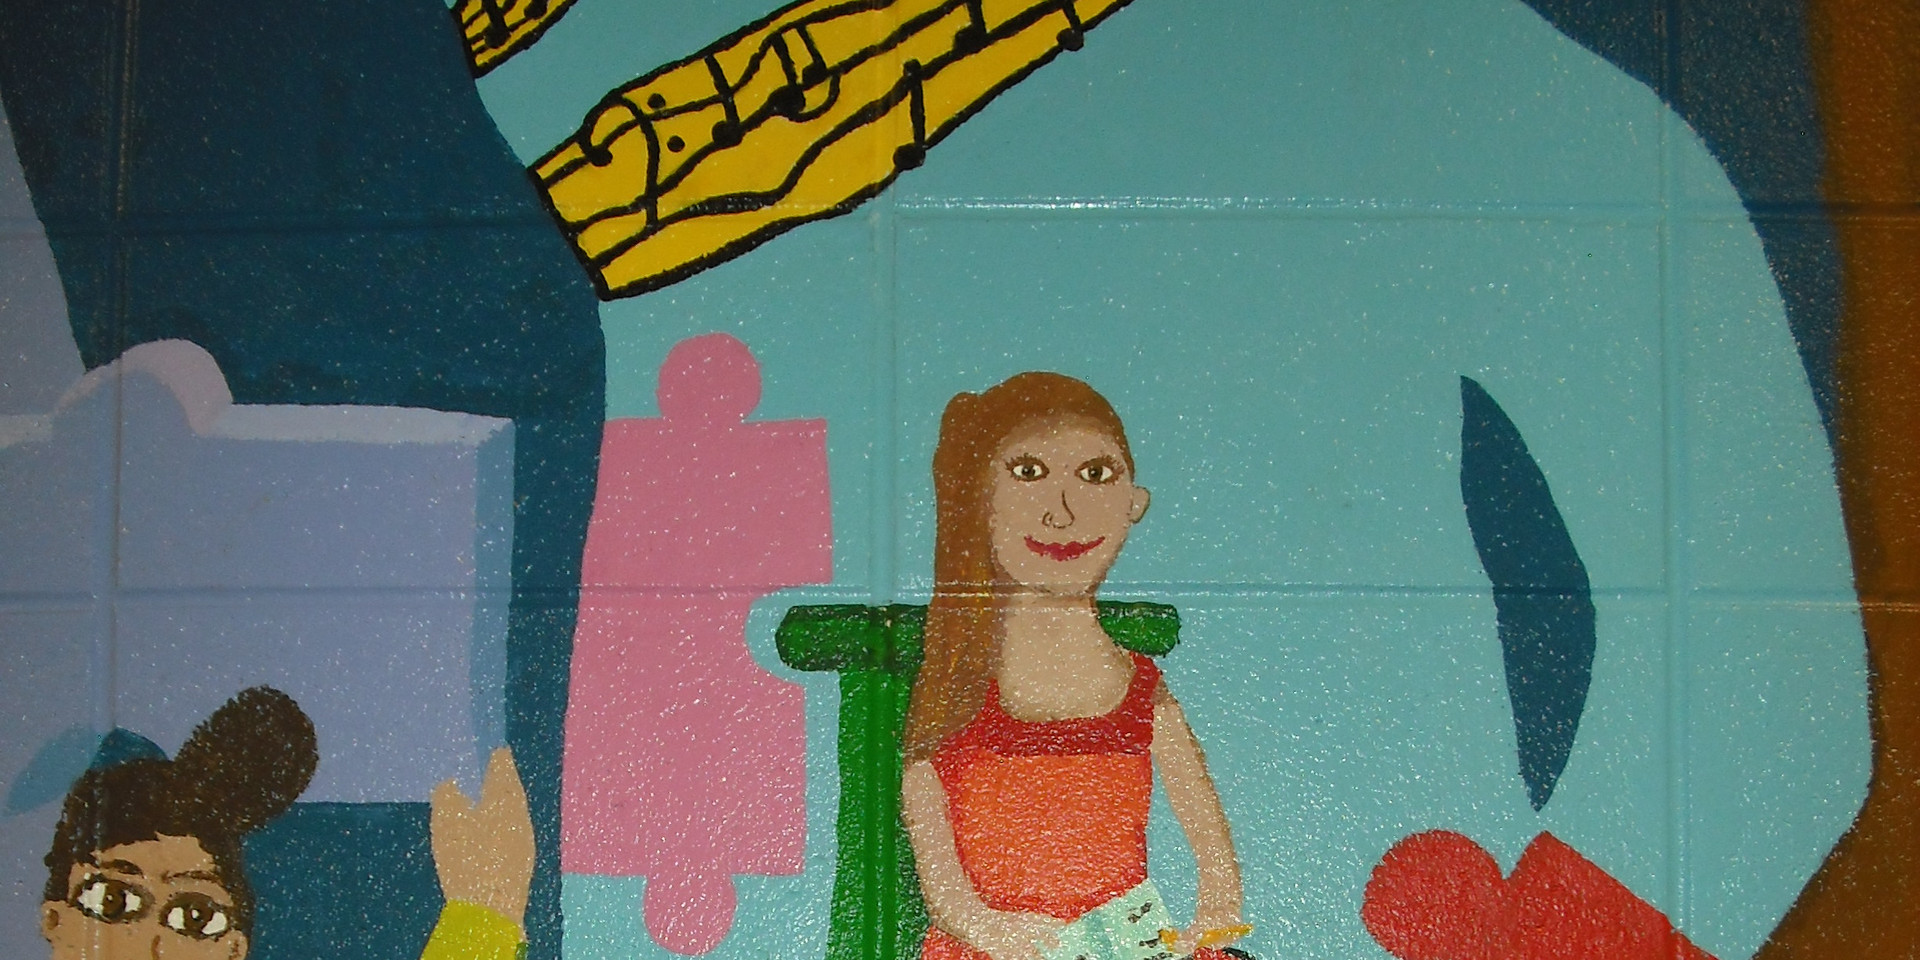 South school mural detail